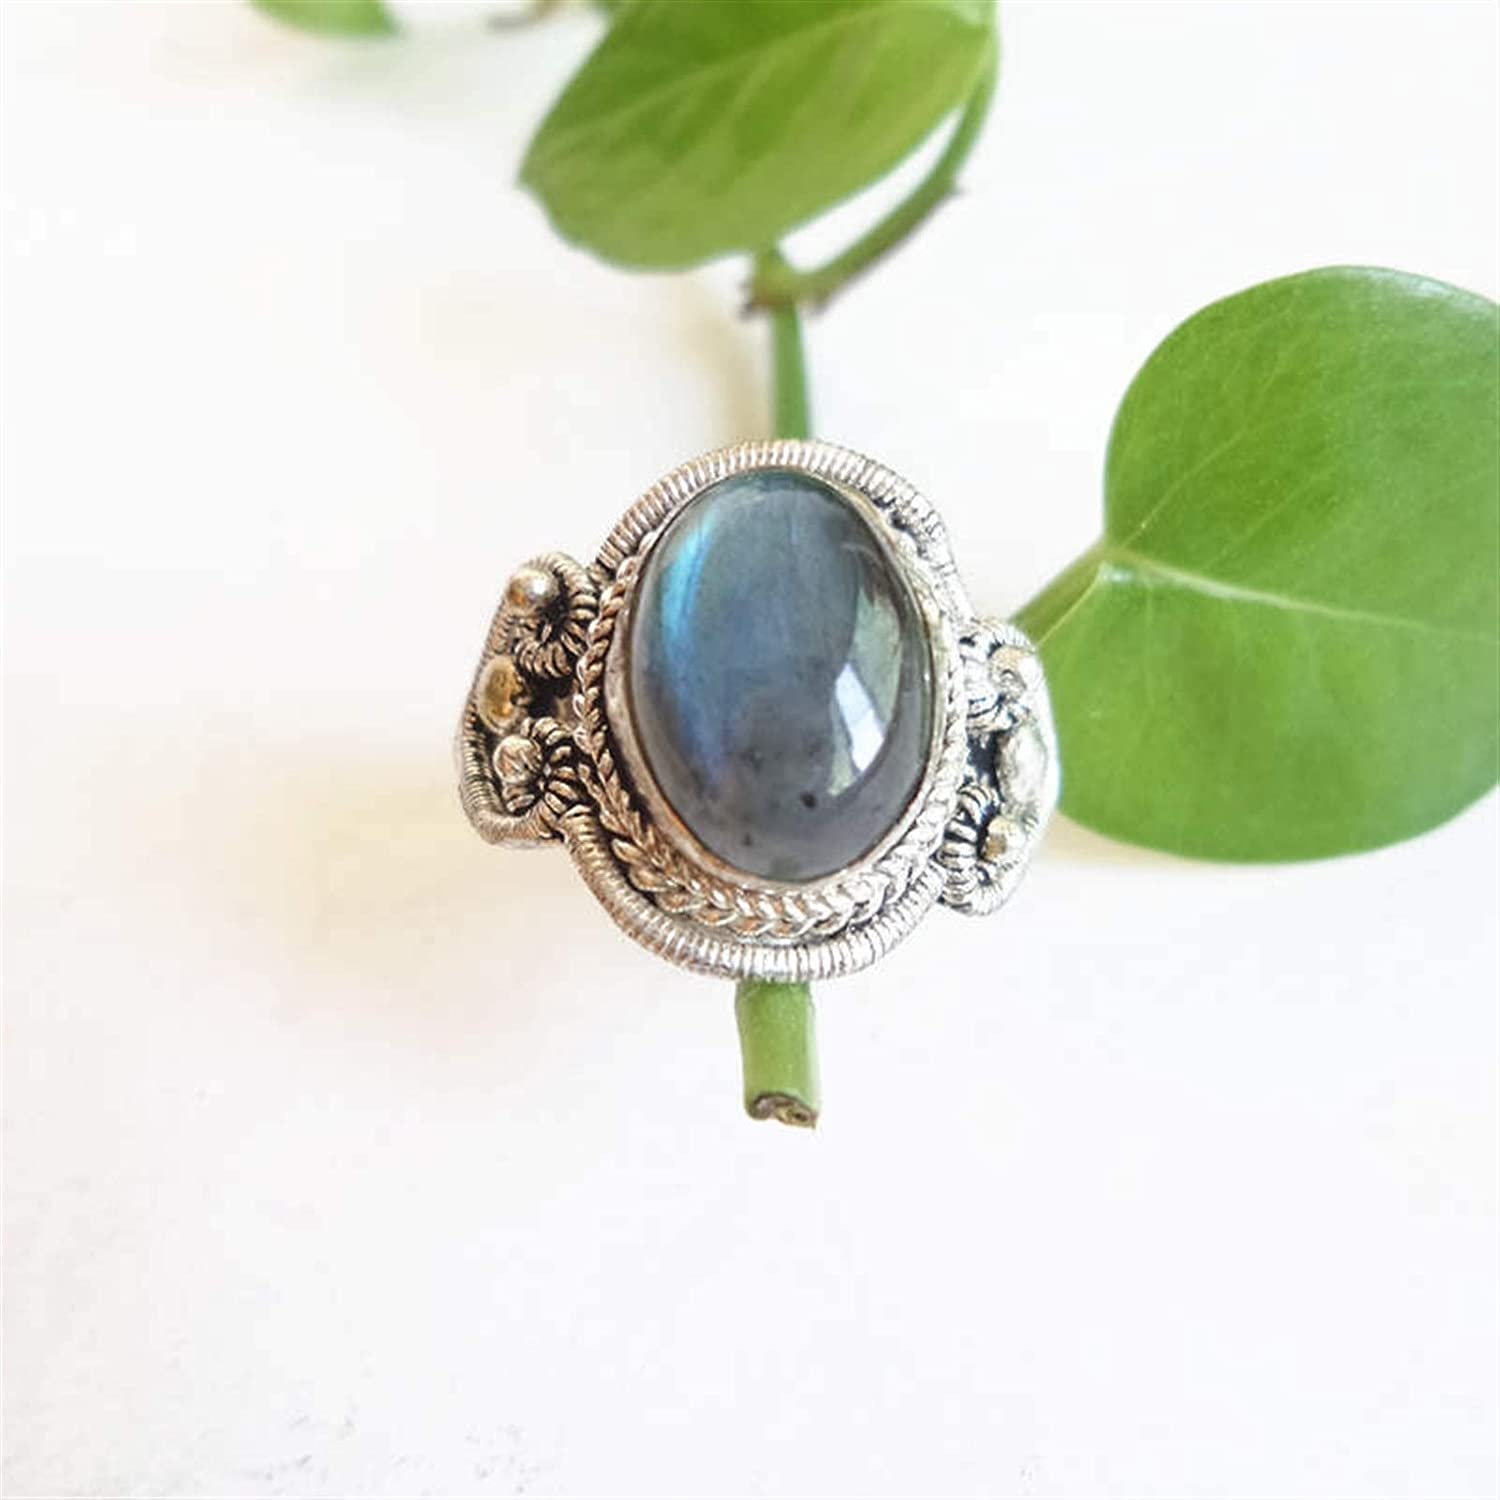 WSJKL Nepal Hand Jewelry Copper Inlaid Natural Labradorite Vintage Rings Open Adjustable Size for Man Last R087 (Color : Resizable)